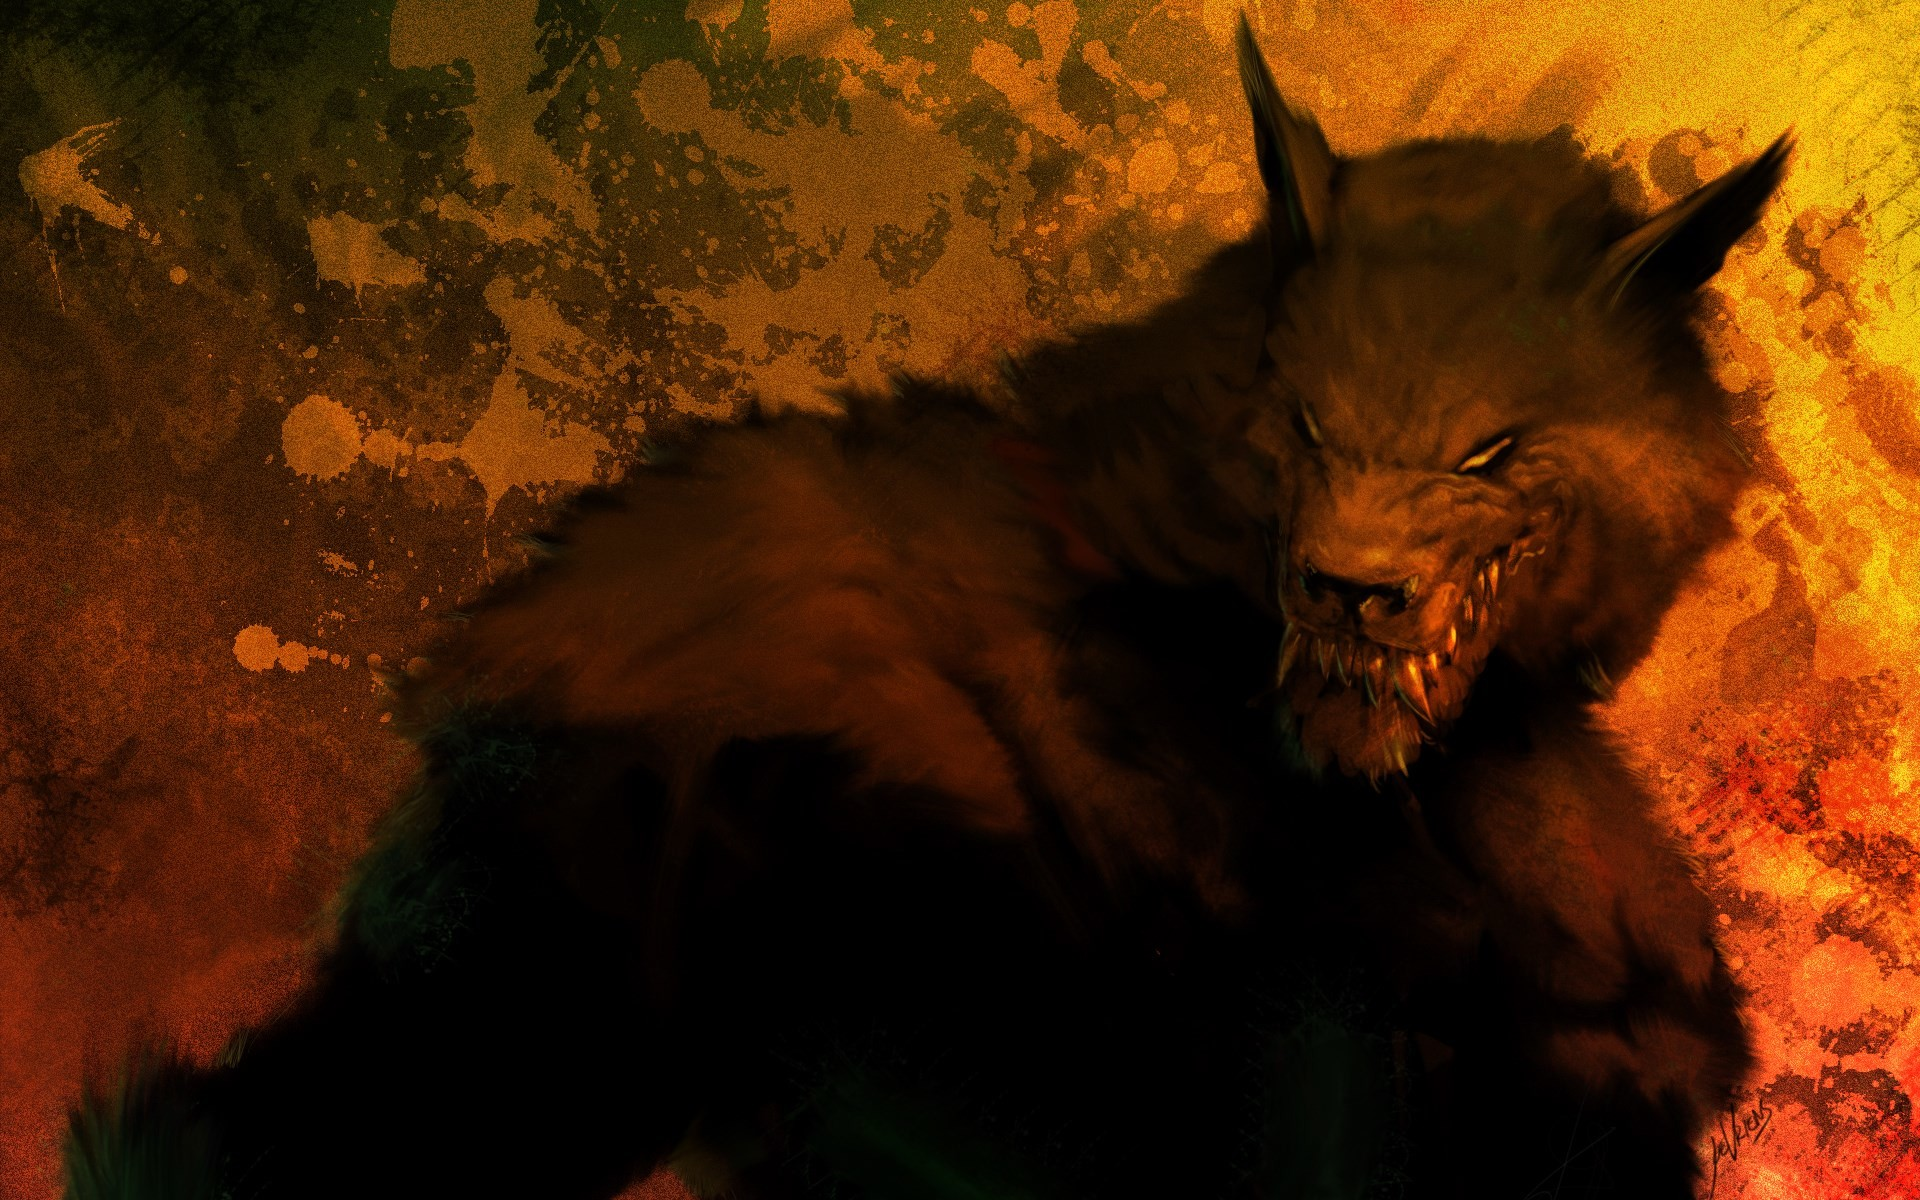 1920x1200 werewolf computer wallpaper backgrounds - werewolf category